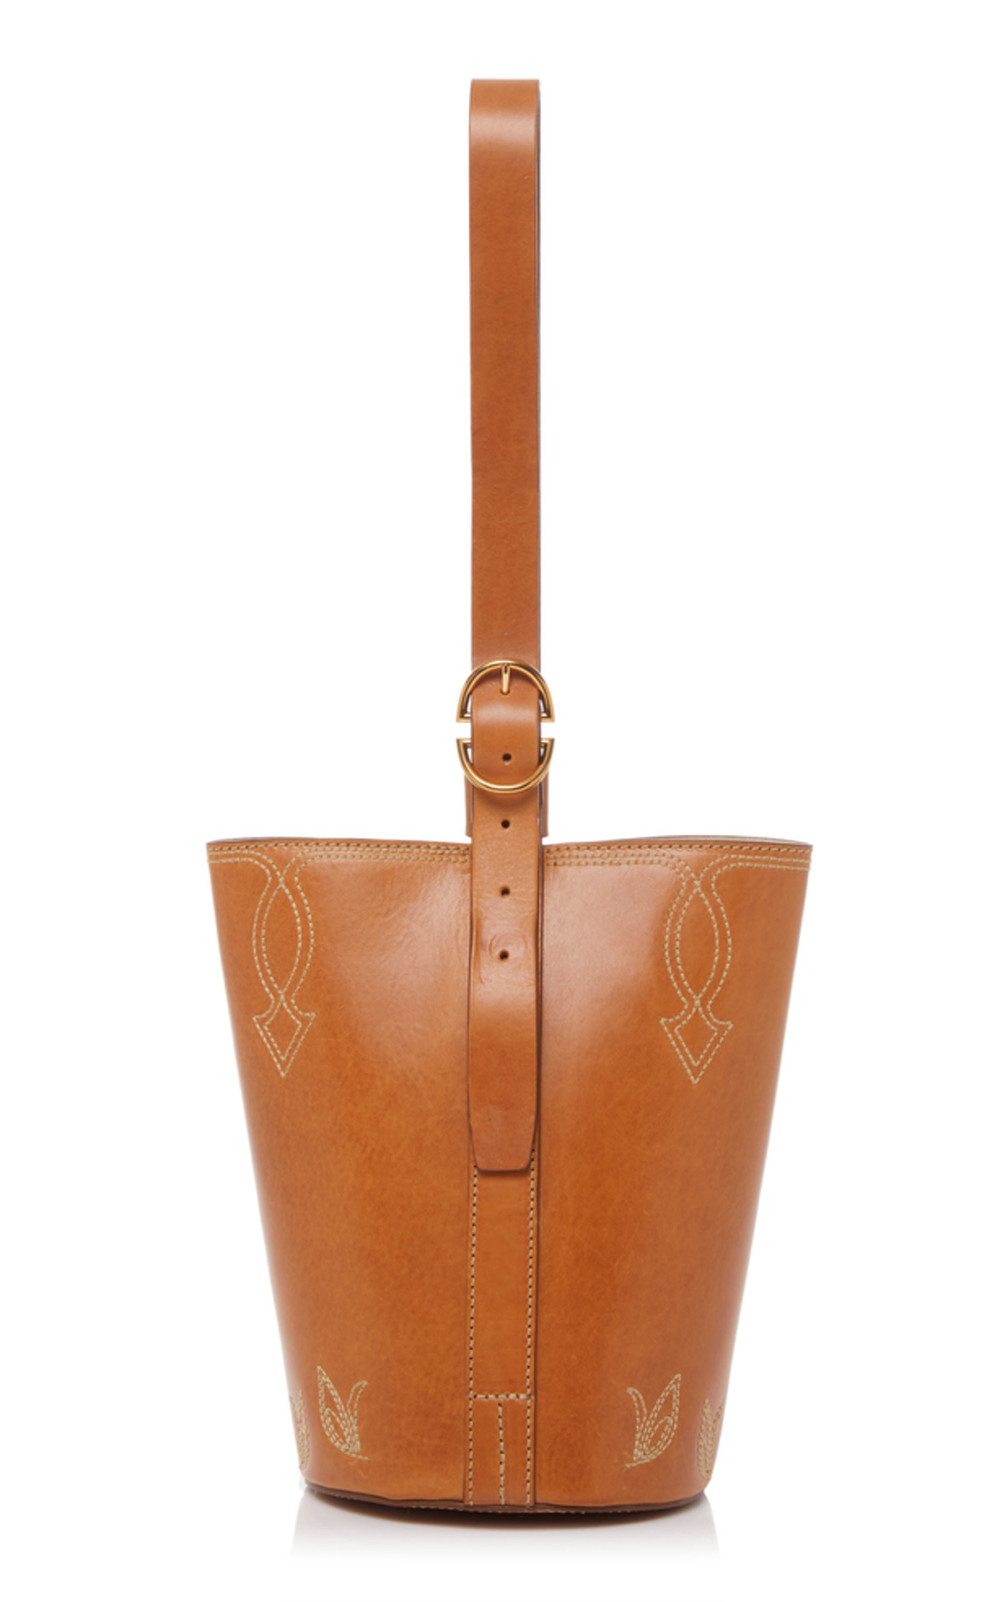 Trademark Small Western Leather Bucket Bag in brown